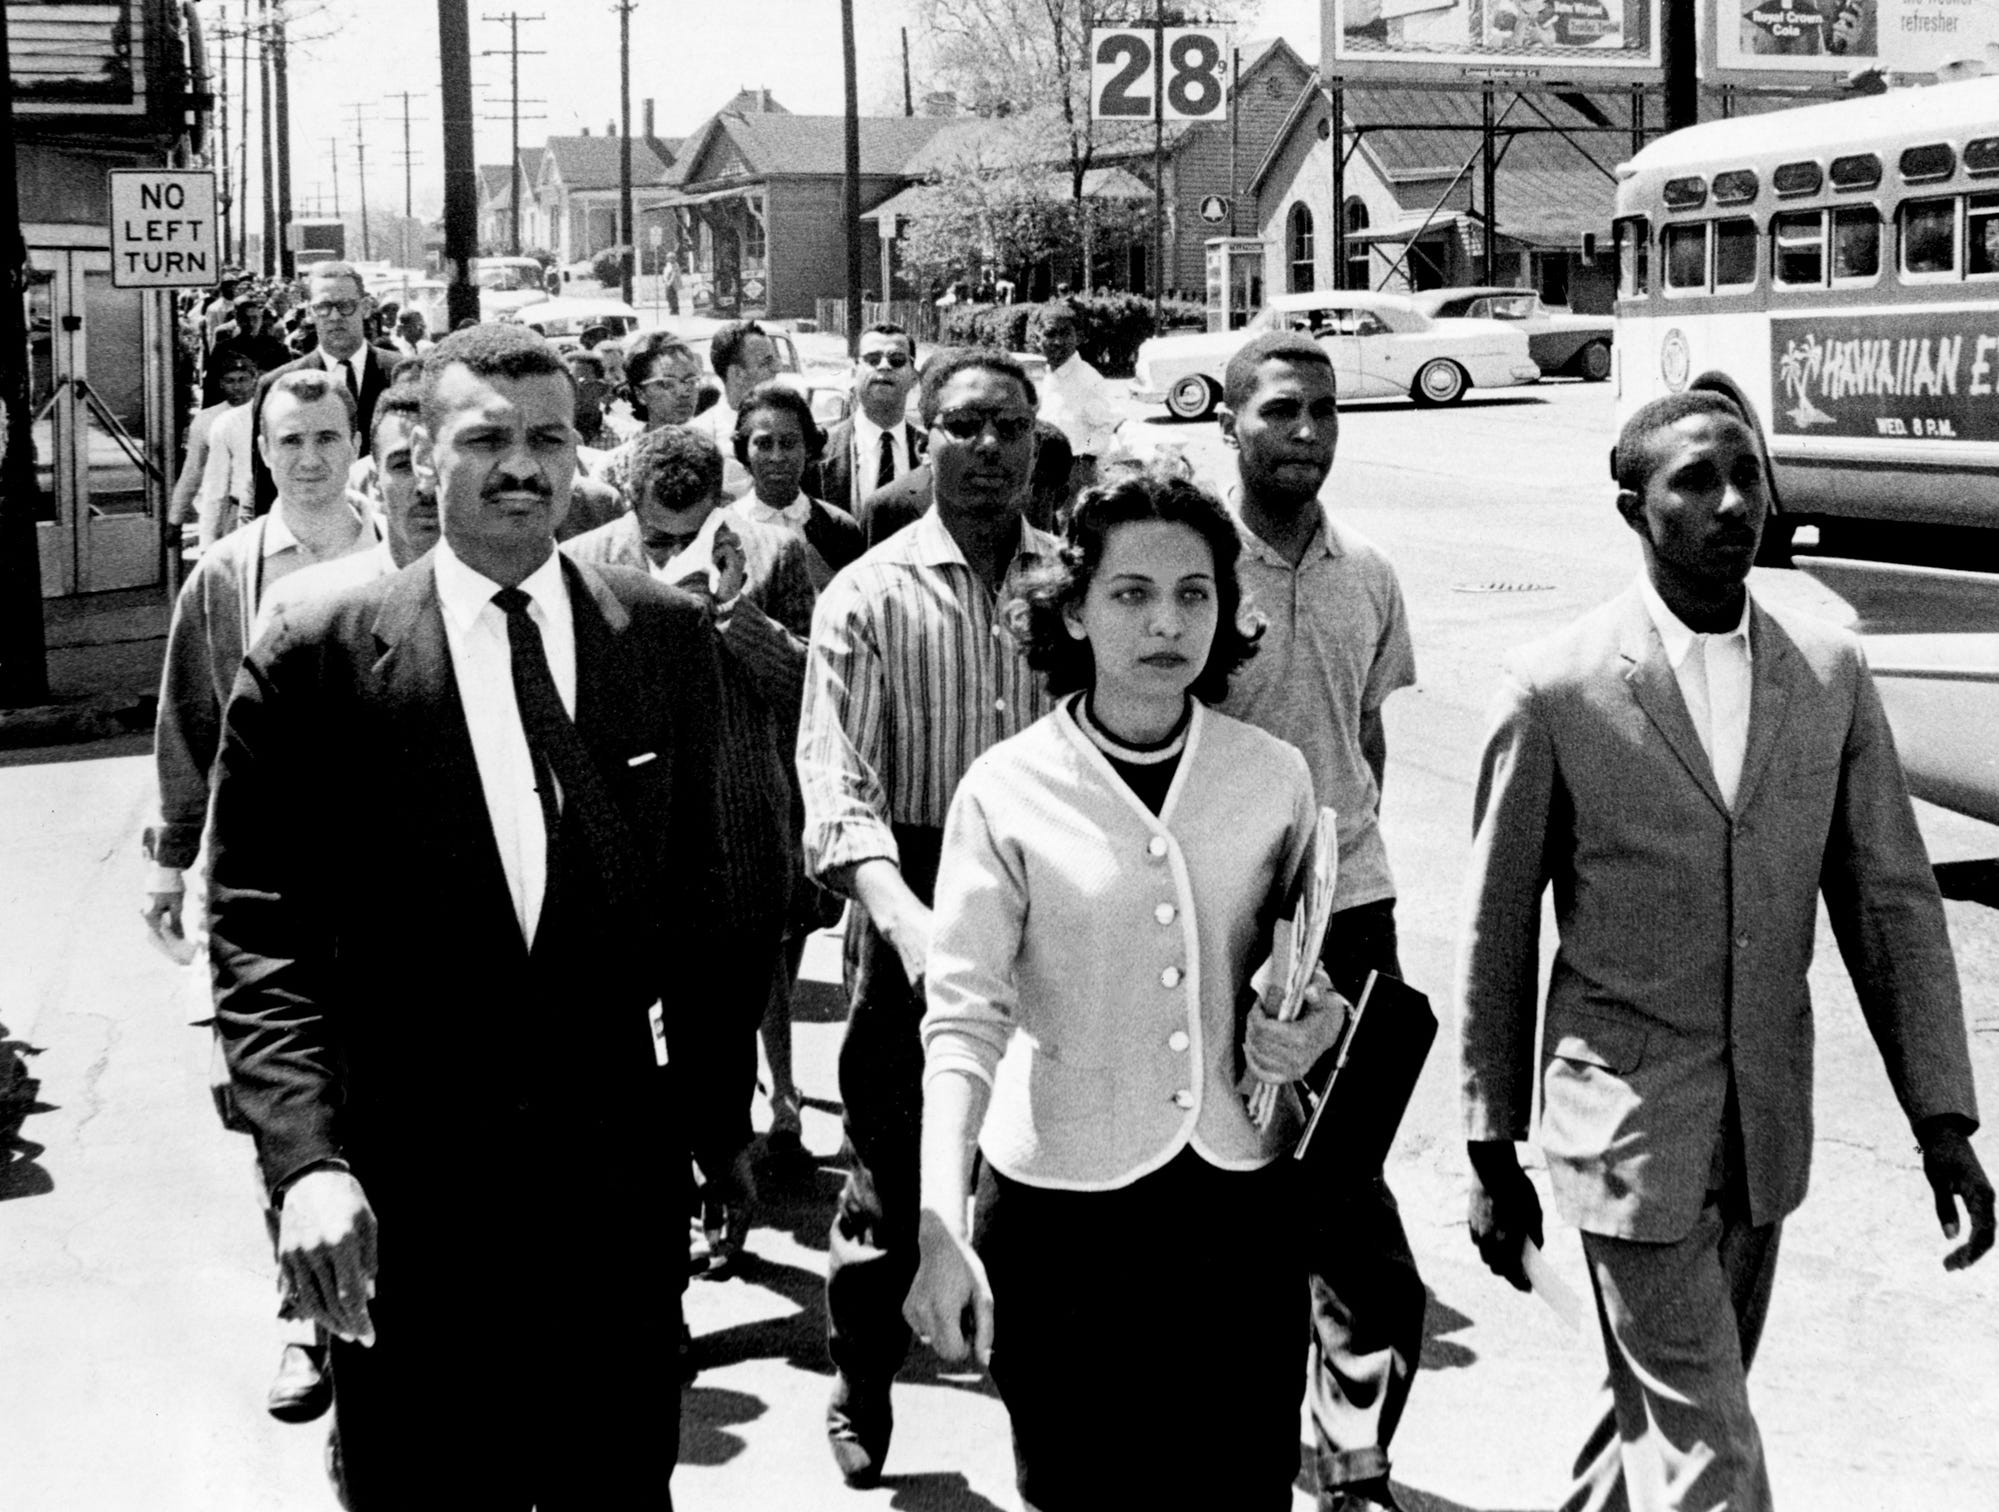 Black leaders march down Jefferson Street at the head of a group of 3,000 demonstrators April 19, 1960. They were headed toward City Hall on the day of the Z. Alexander Looby bombing. In the first row are the Rev. C.T. Vivian, left, Diane Nash of Fisk and Bernard Lafayette of American Baptist Seminary. In the second row are Kenneth Frazier and Curtis Murphy of Tennessee A&I and Rodney Powell of Meharry. Using his handkerchief in the third row is the Rev. James Lawson, one of the advisers to the students. News reporters believed it marked the first time Lawson had participated in a demonstration downtown.